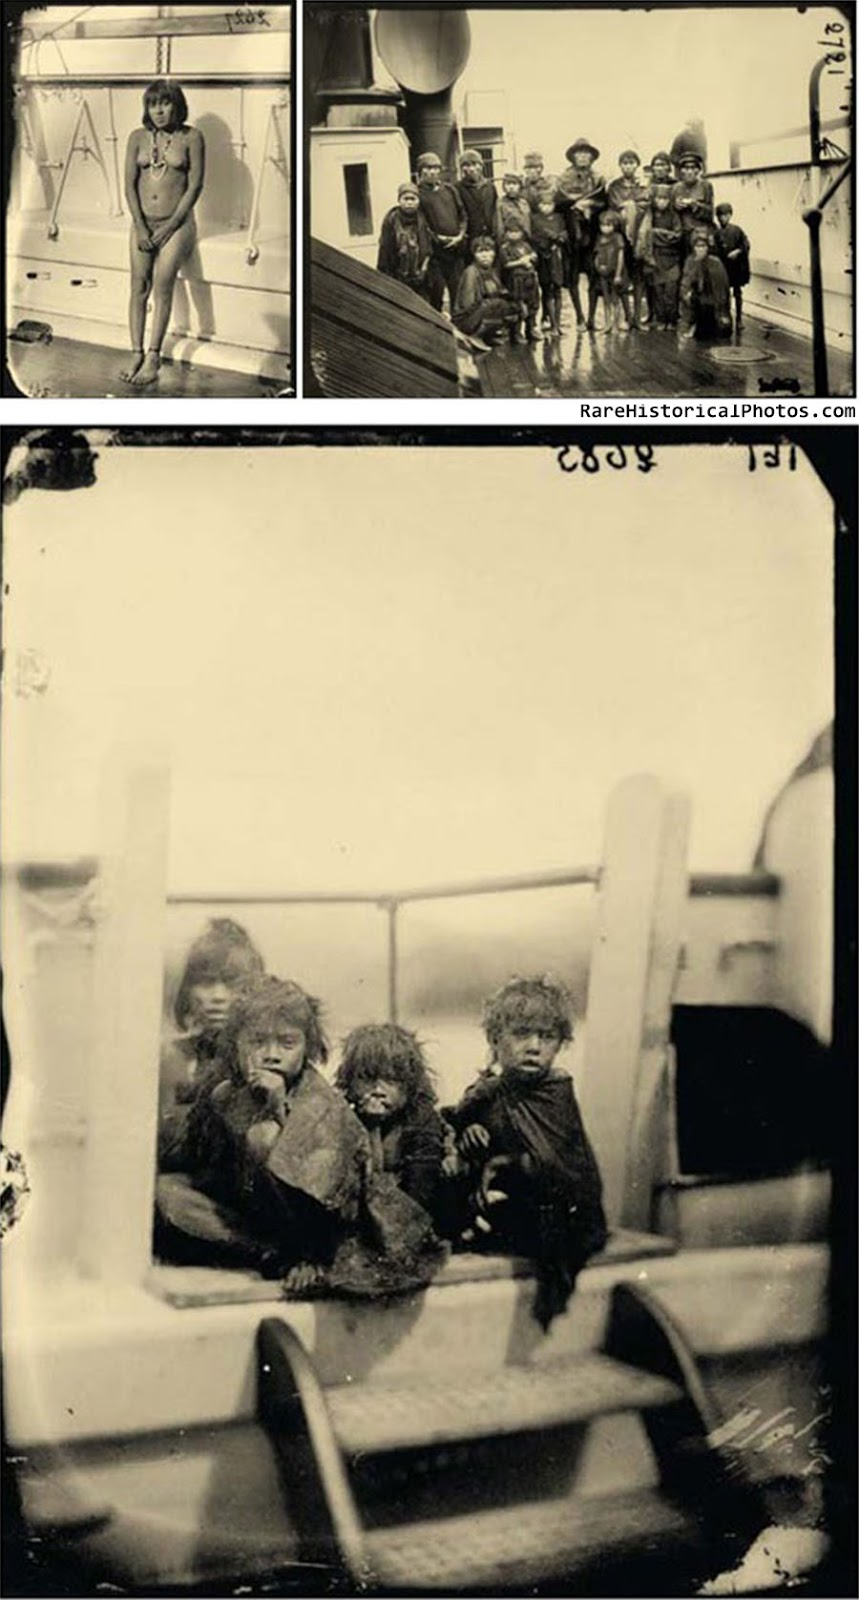 Selknam natives en route to Europe for being exhibited as animals in Human Zoos, 1899.